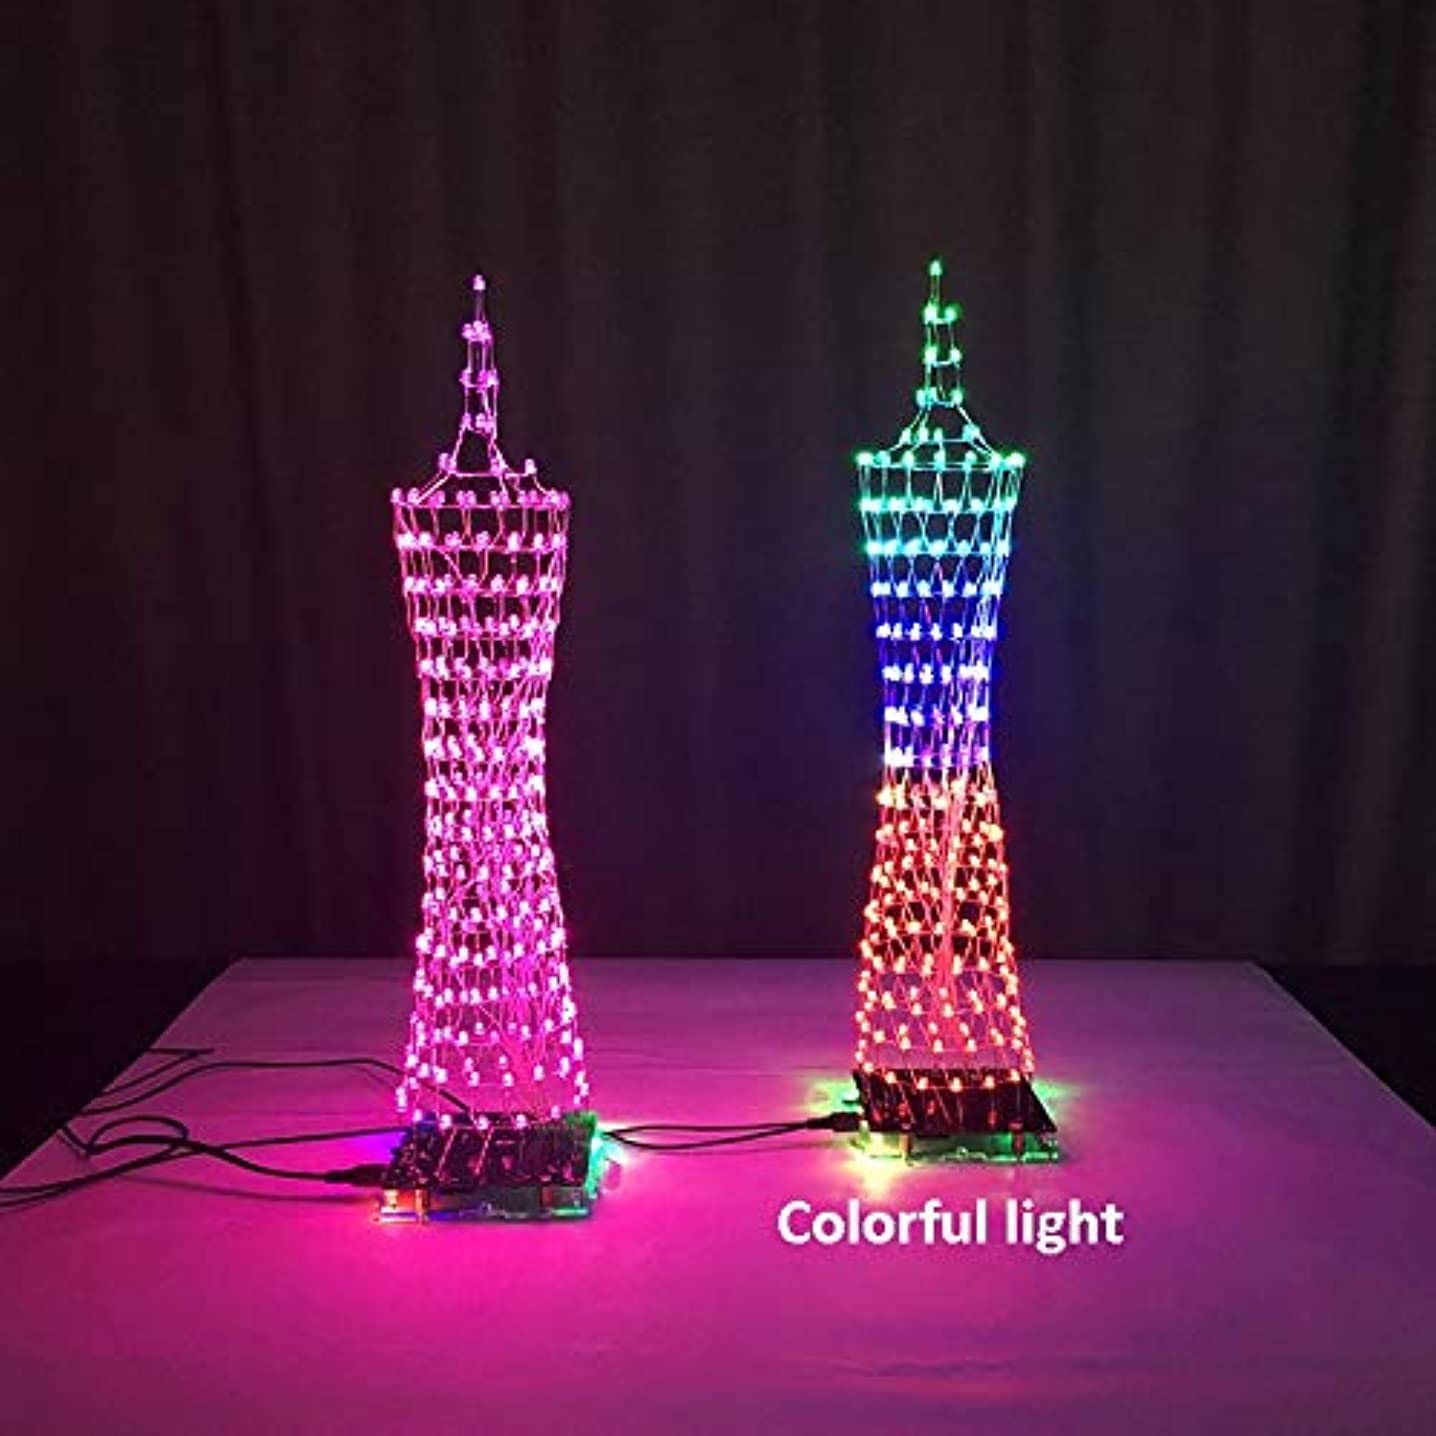 SHAPB Colorful LED Tower Display Lamp Infrared Remote Control Electronic DIY Kits Music Spectrum Soldering Kits DIY Brain-Training Toy(1PCS)